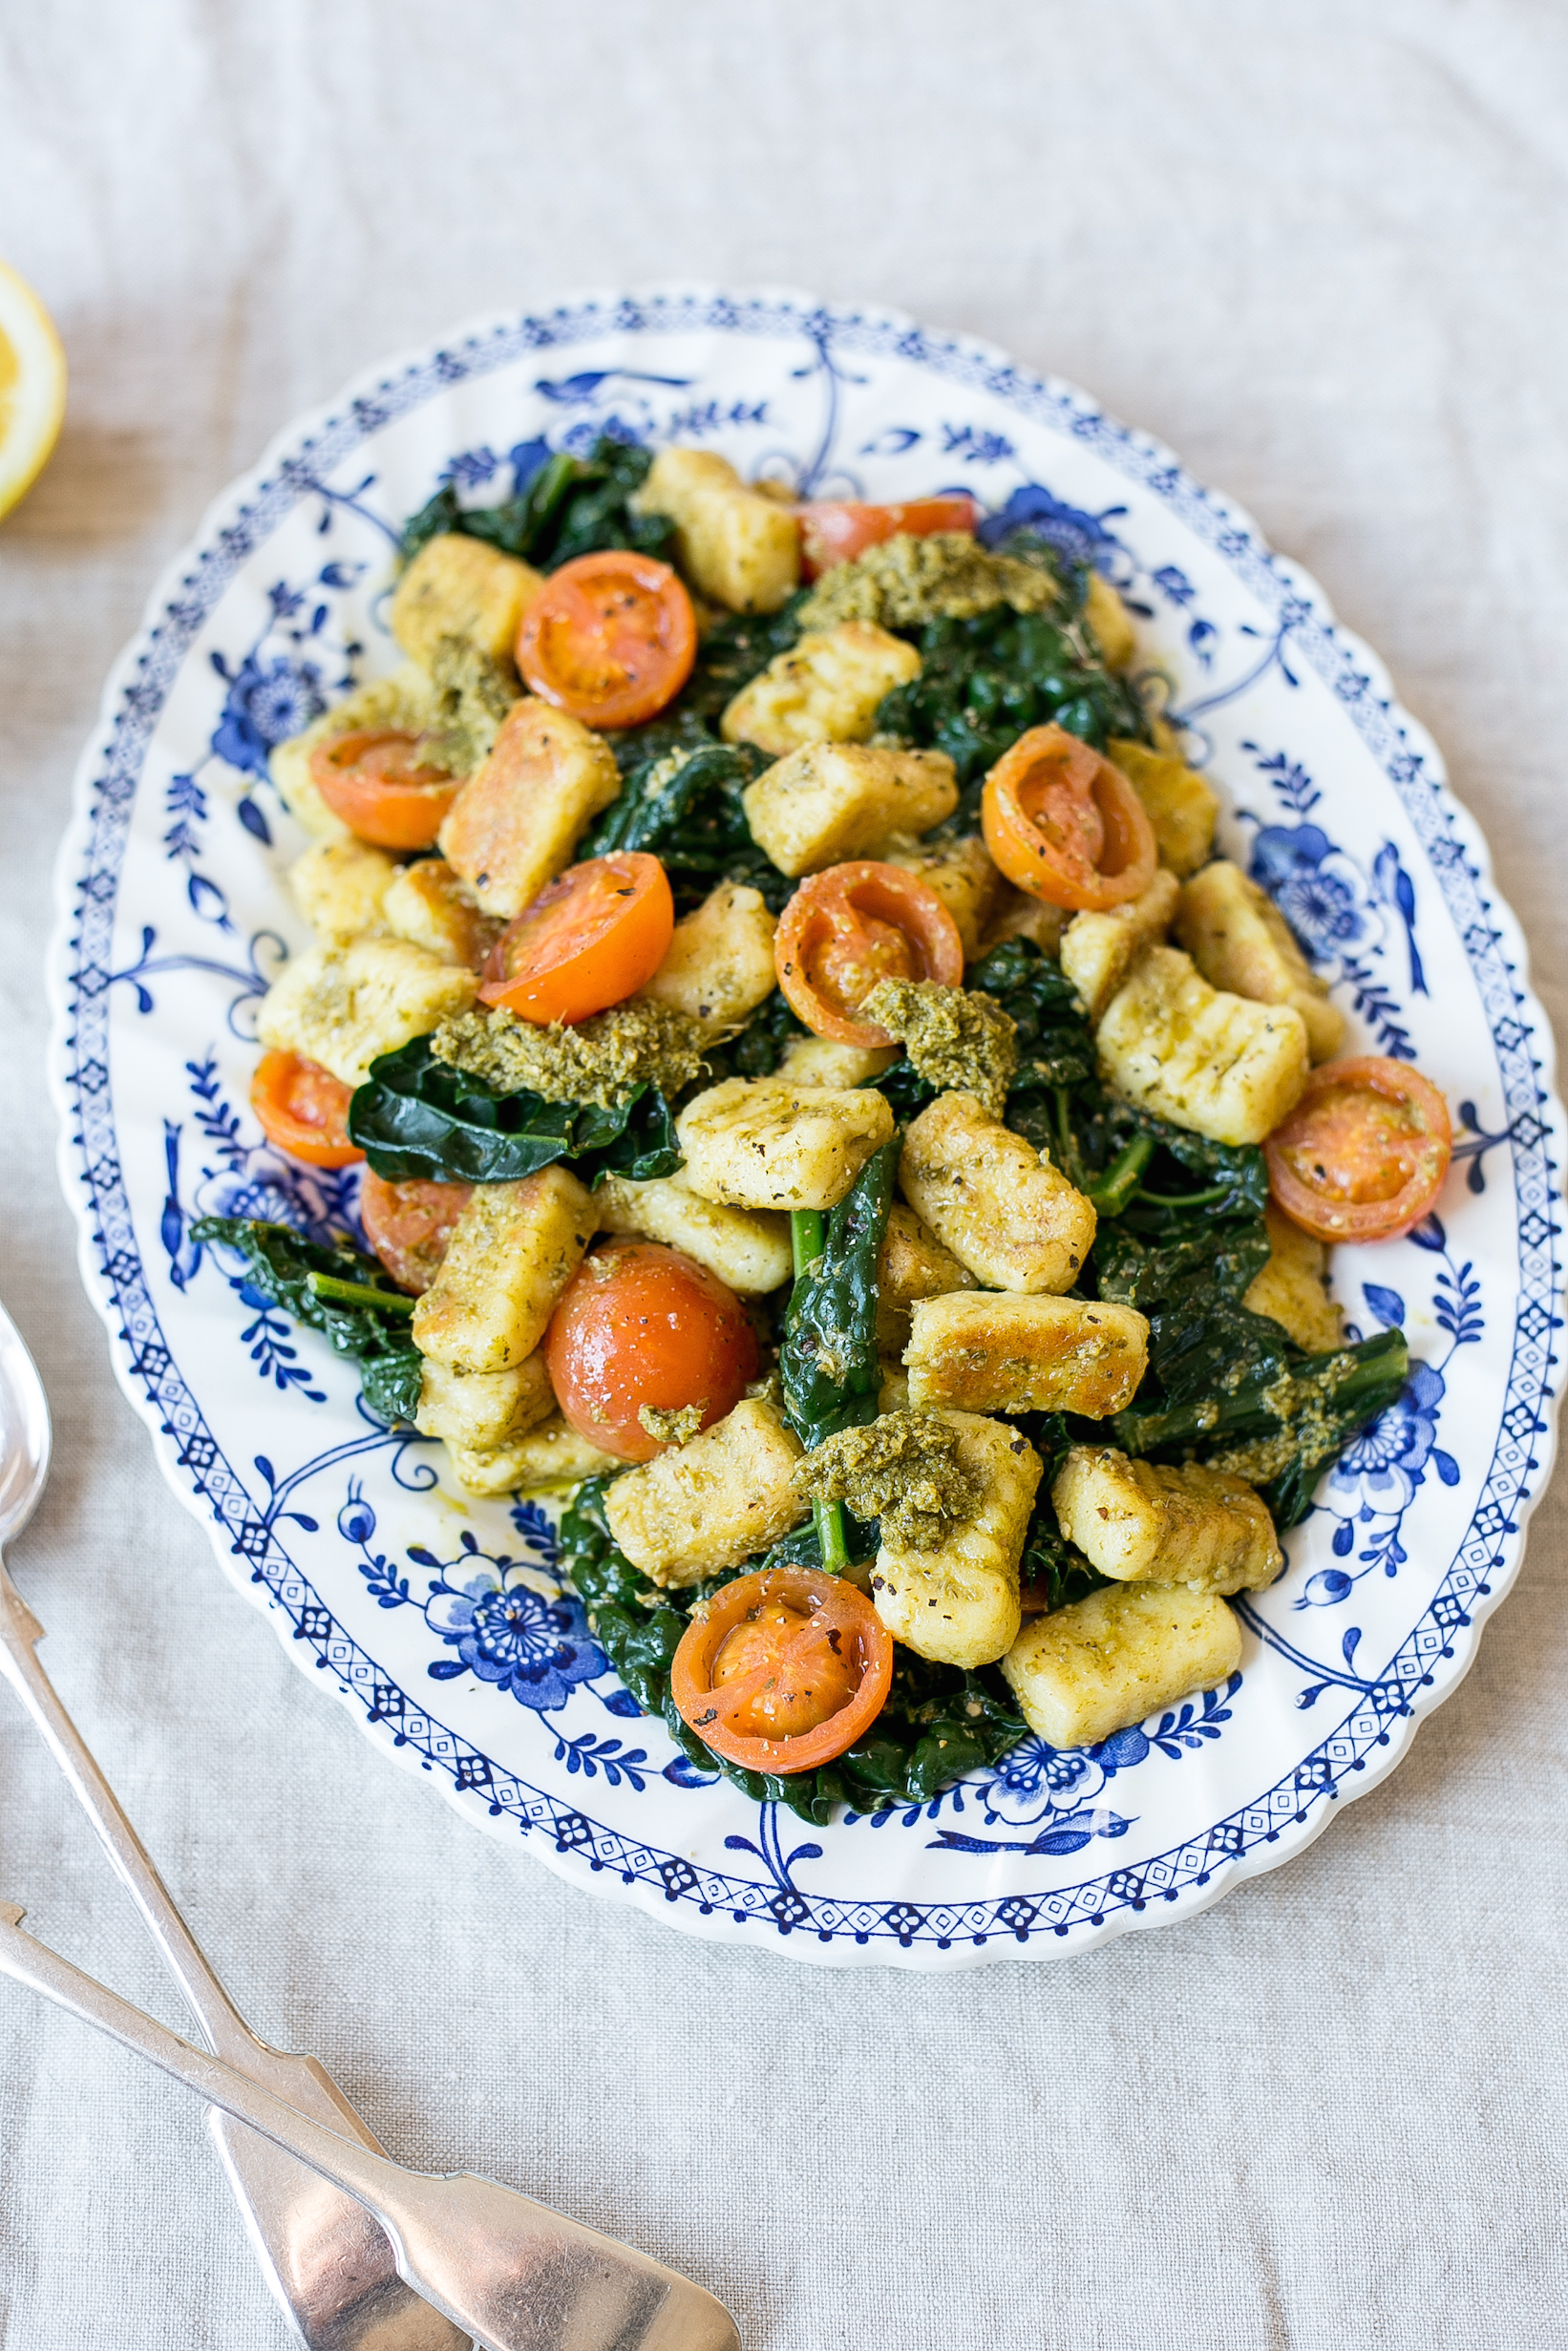 Low FODMAP Pan fried gnocchi with basil pesto